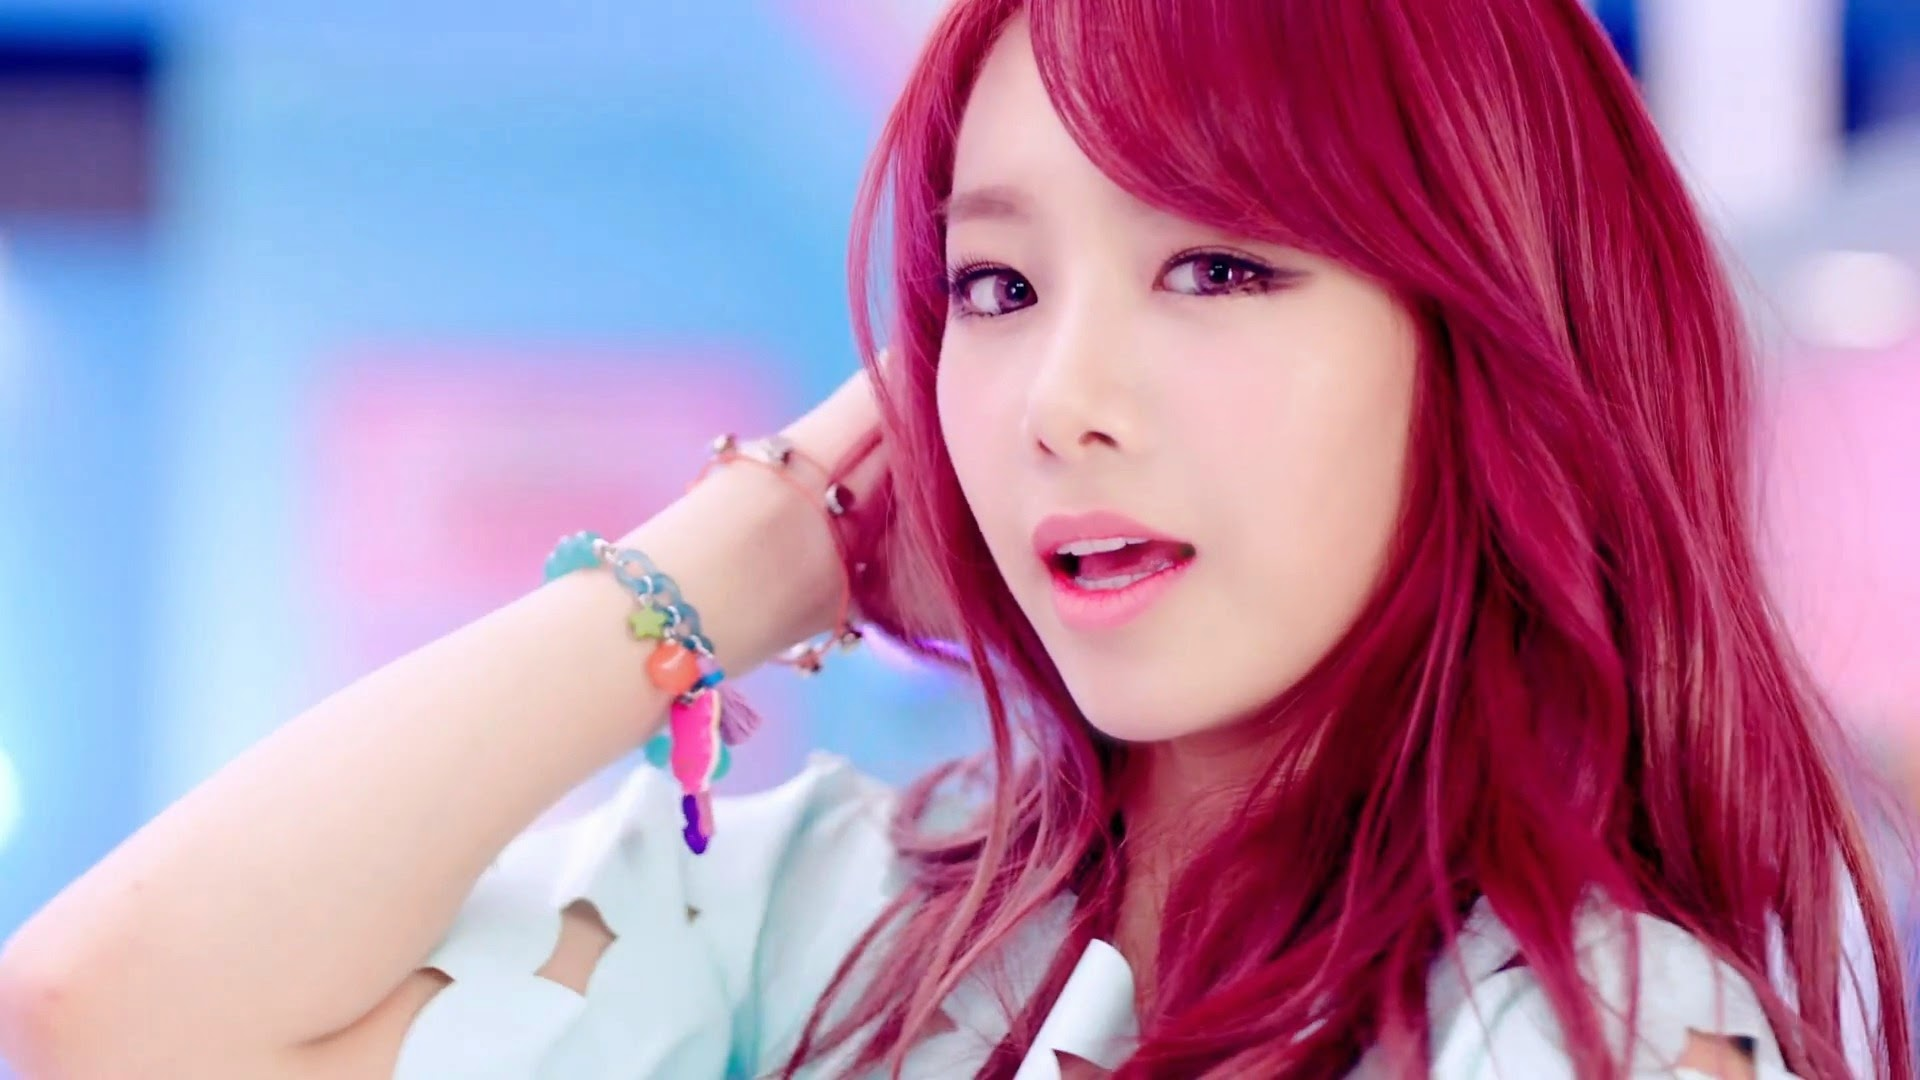 Bestie's Uji in Excuse Me MV